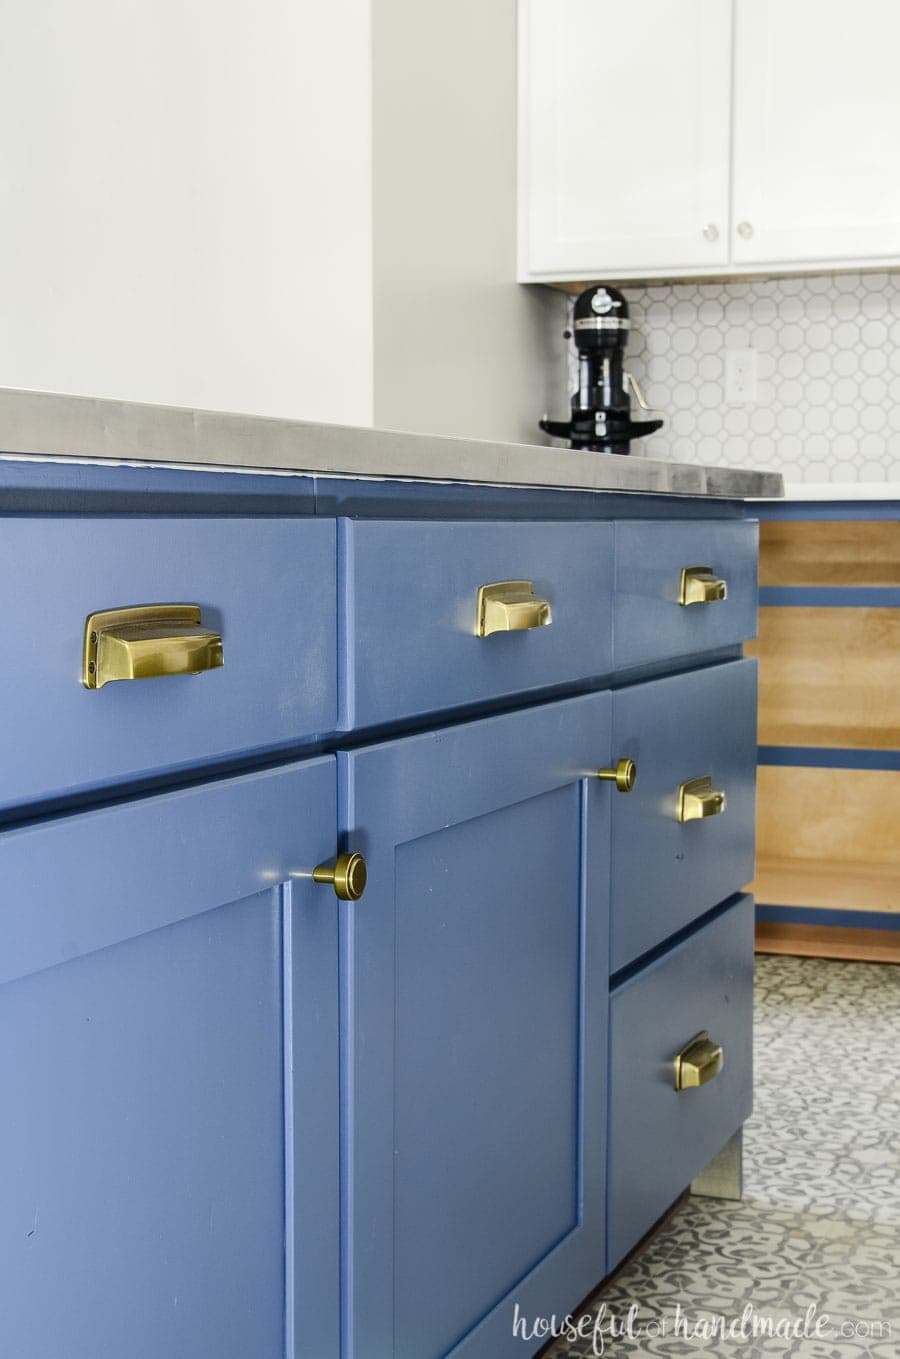 Brass knobs and pulls are perfect on the navy blue base cabinets. See the complete budget farmhouse kitchen remodel at housefulofhandmade.com.